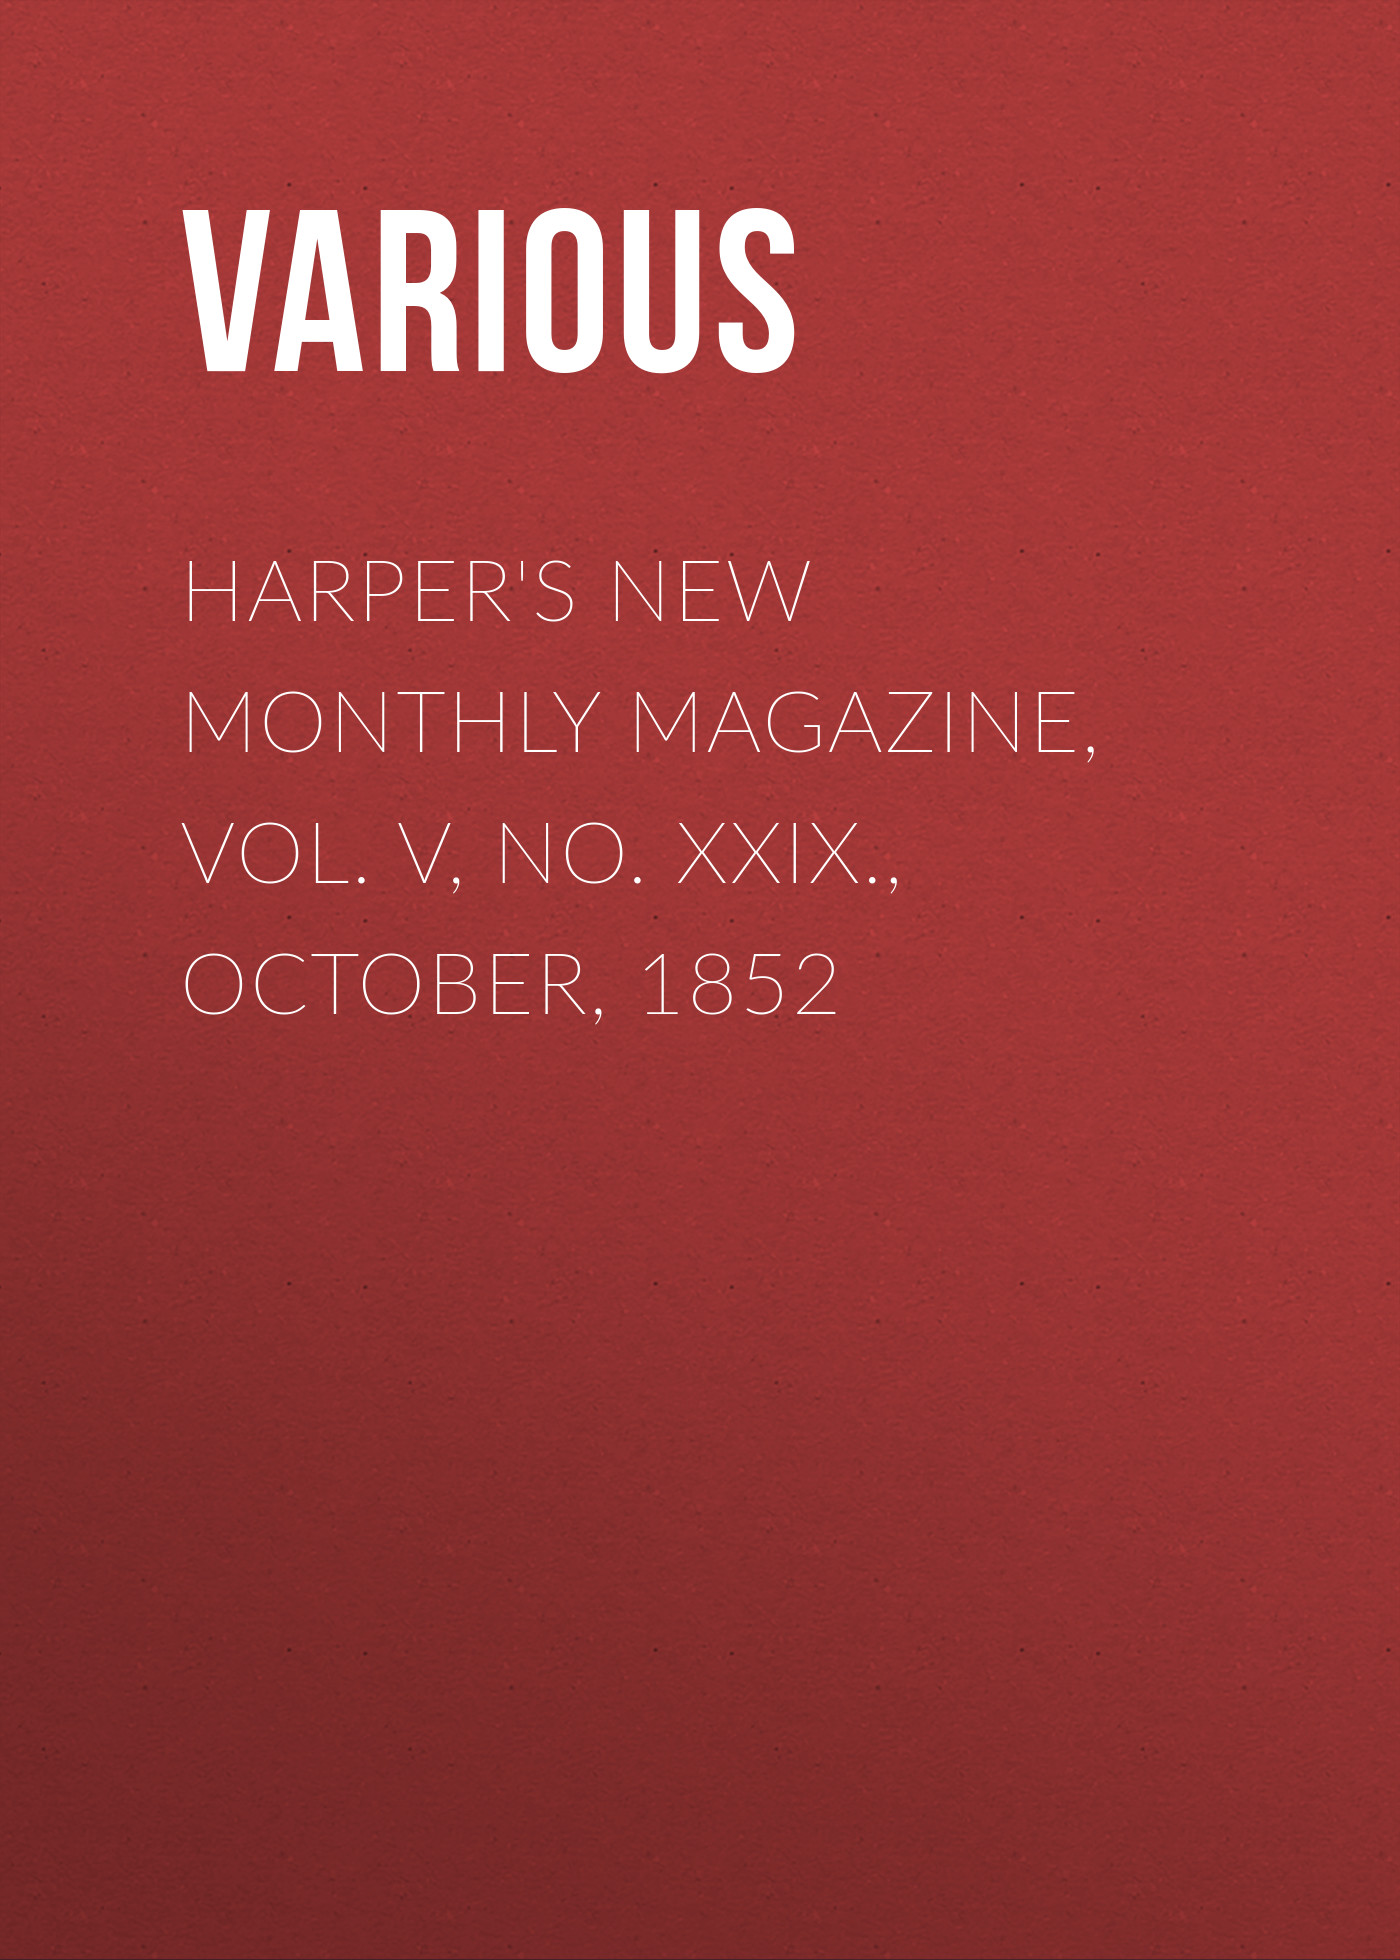 Various Harper's New Monthly Magazine, Vol. V, No. XXIX., October, 1852 various harper s new monthly magazine vol iv no xx january 1852